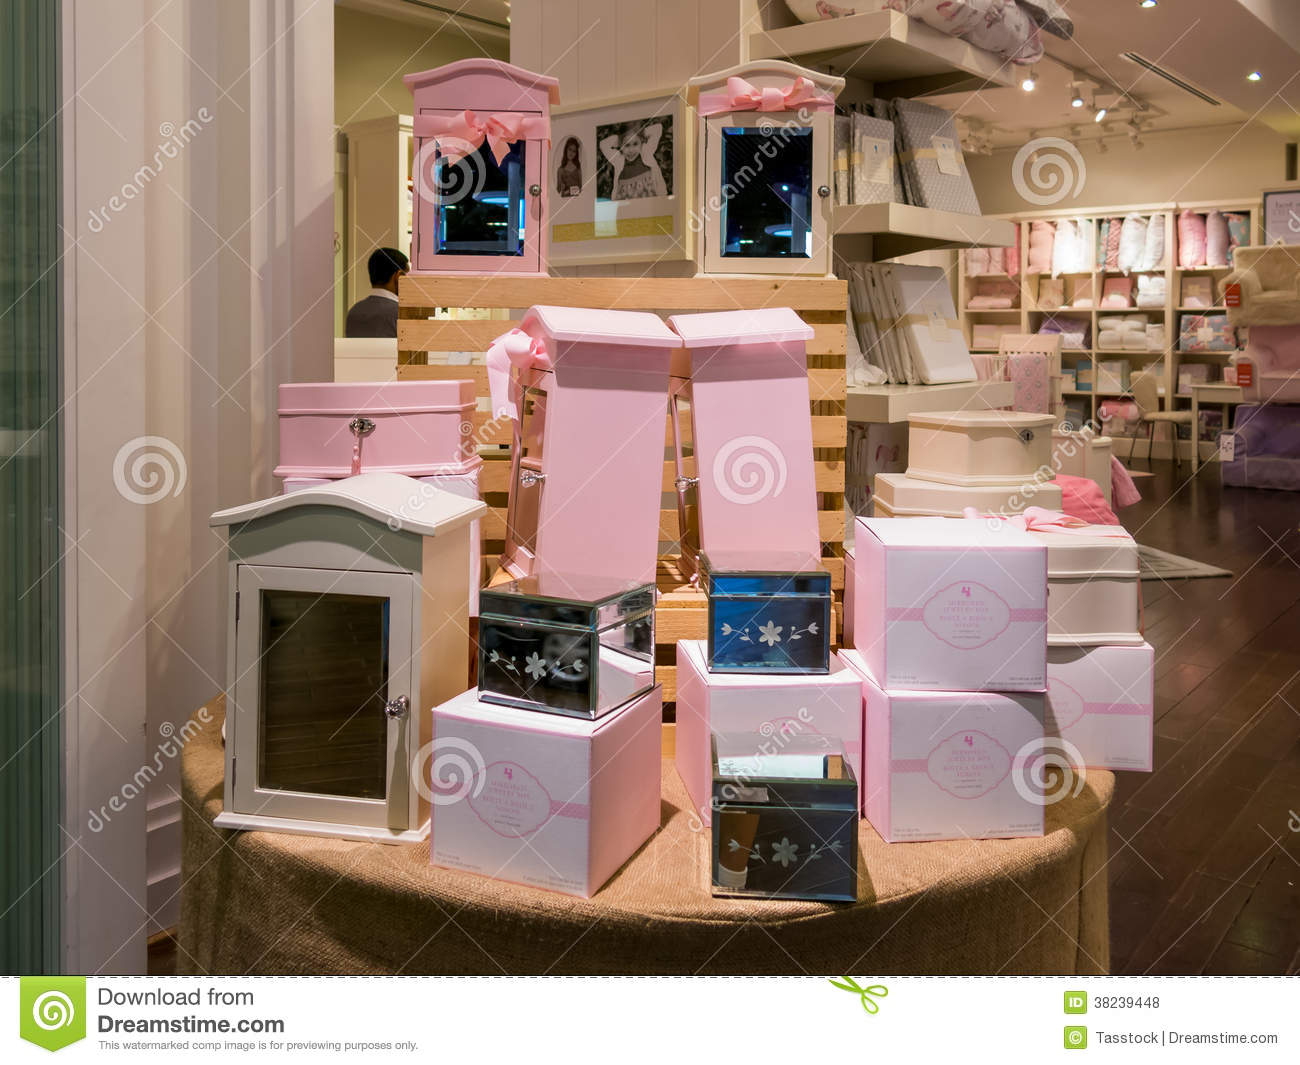 Display In Home Decor Store In Dubai Mall Editorial Stock